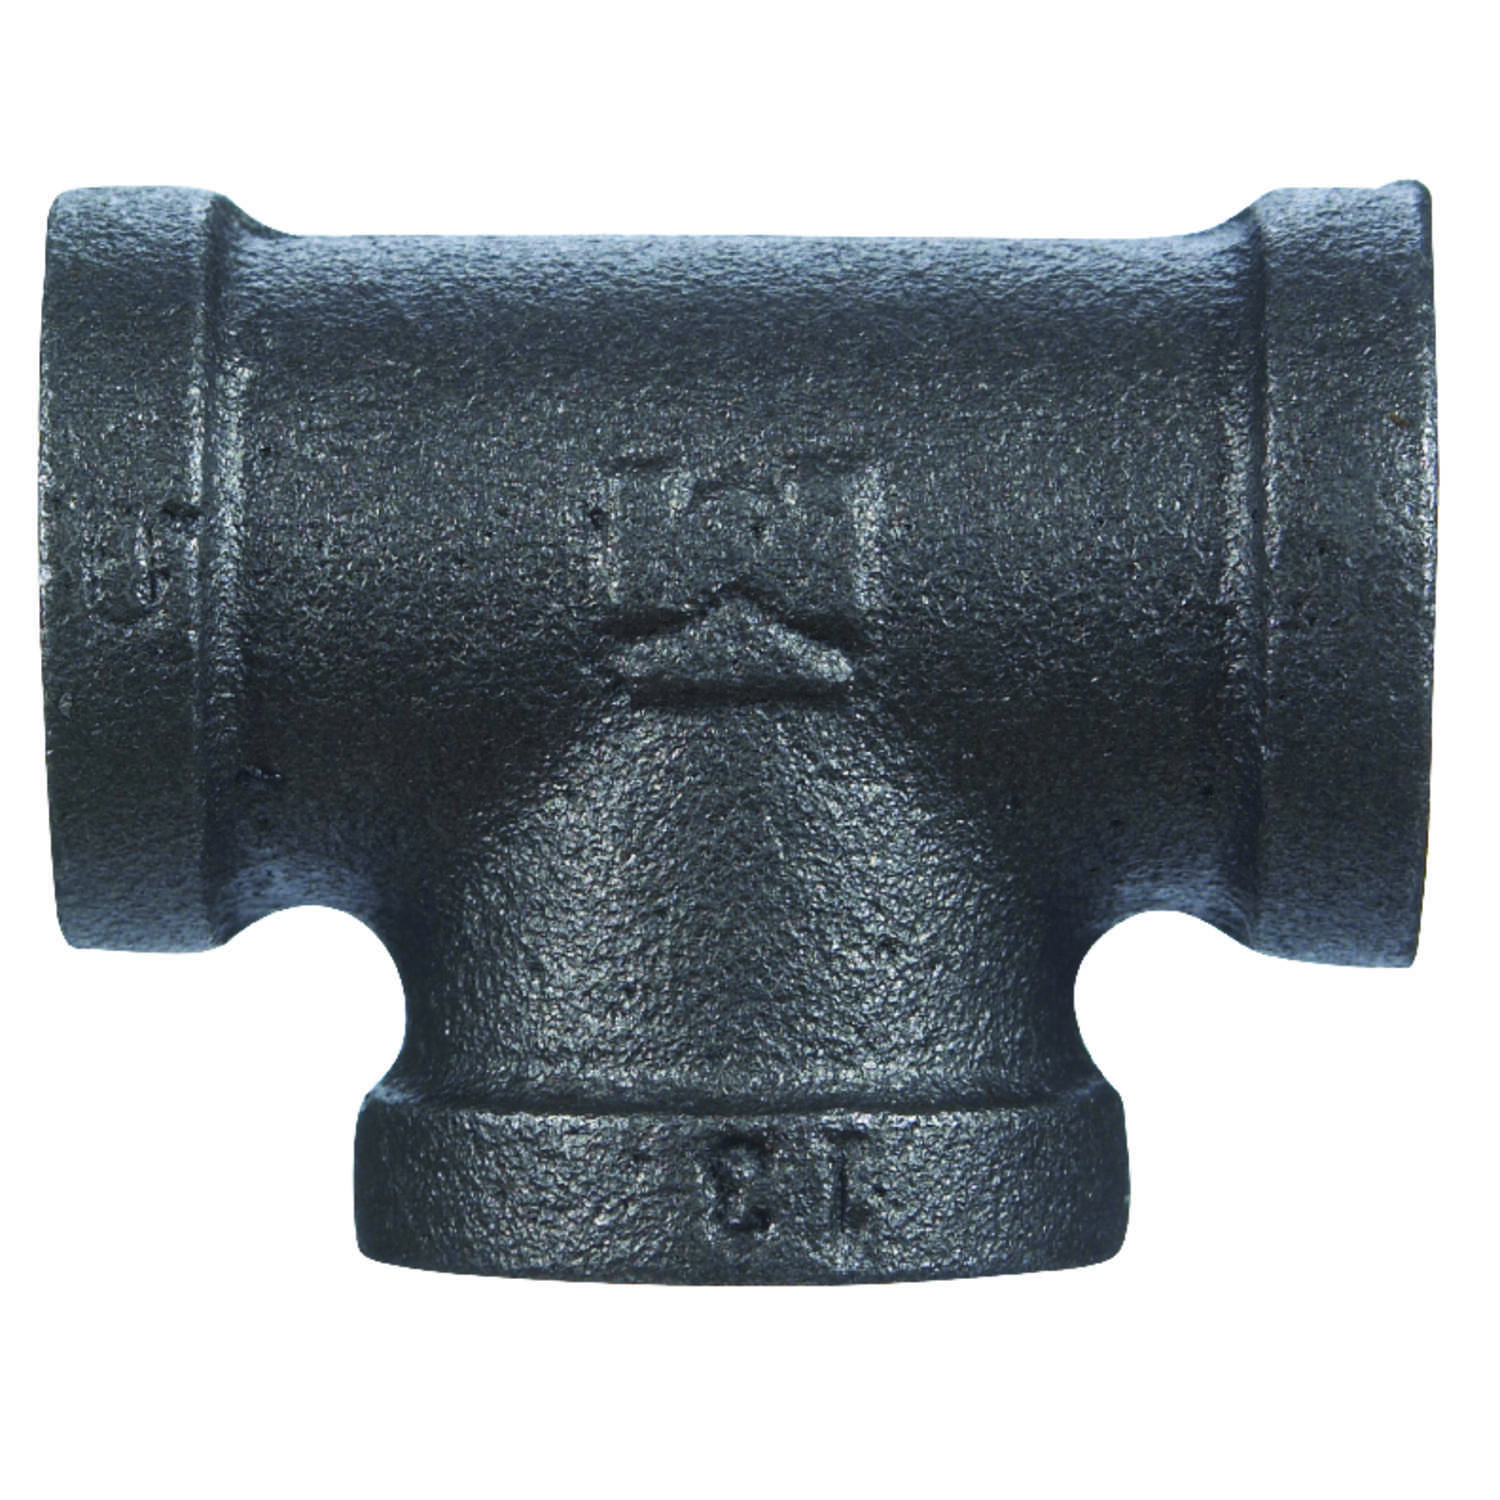 B & K  1-1/4 in. FPT   x 1-1/4 in. Dia. FPT  Black  Malleable Iron  Tee